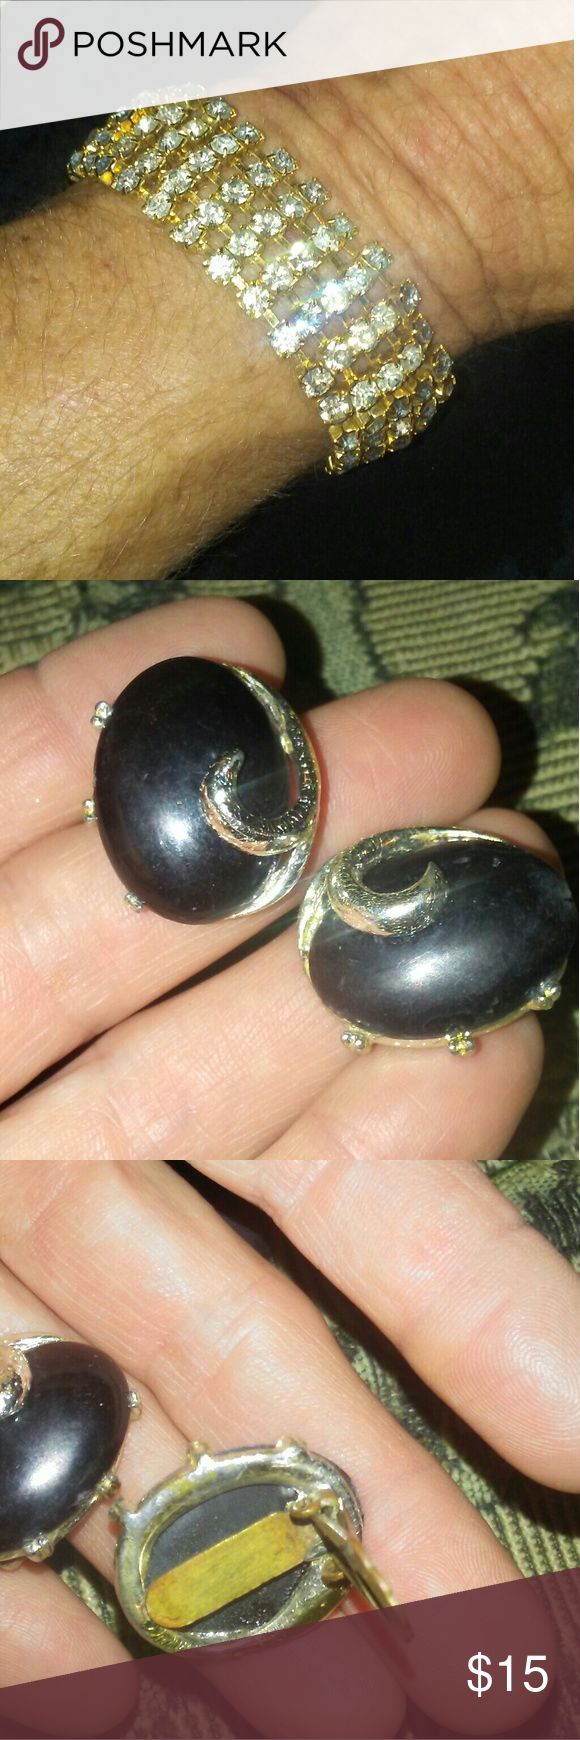 Antique Black Bakelite! Ear Rings Black Antique Bakelite?.  Ear Rings. Clip on. Sturdy. Good vibes to these old relix. Great craftmanship. Made to lasy. No damage. #antiqueearrings none Jewelry Earrings